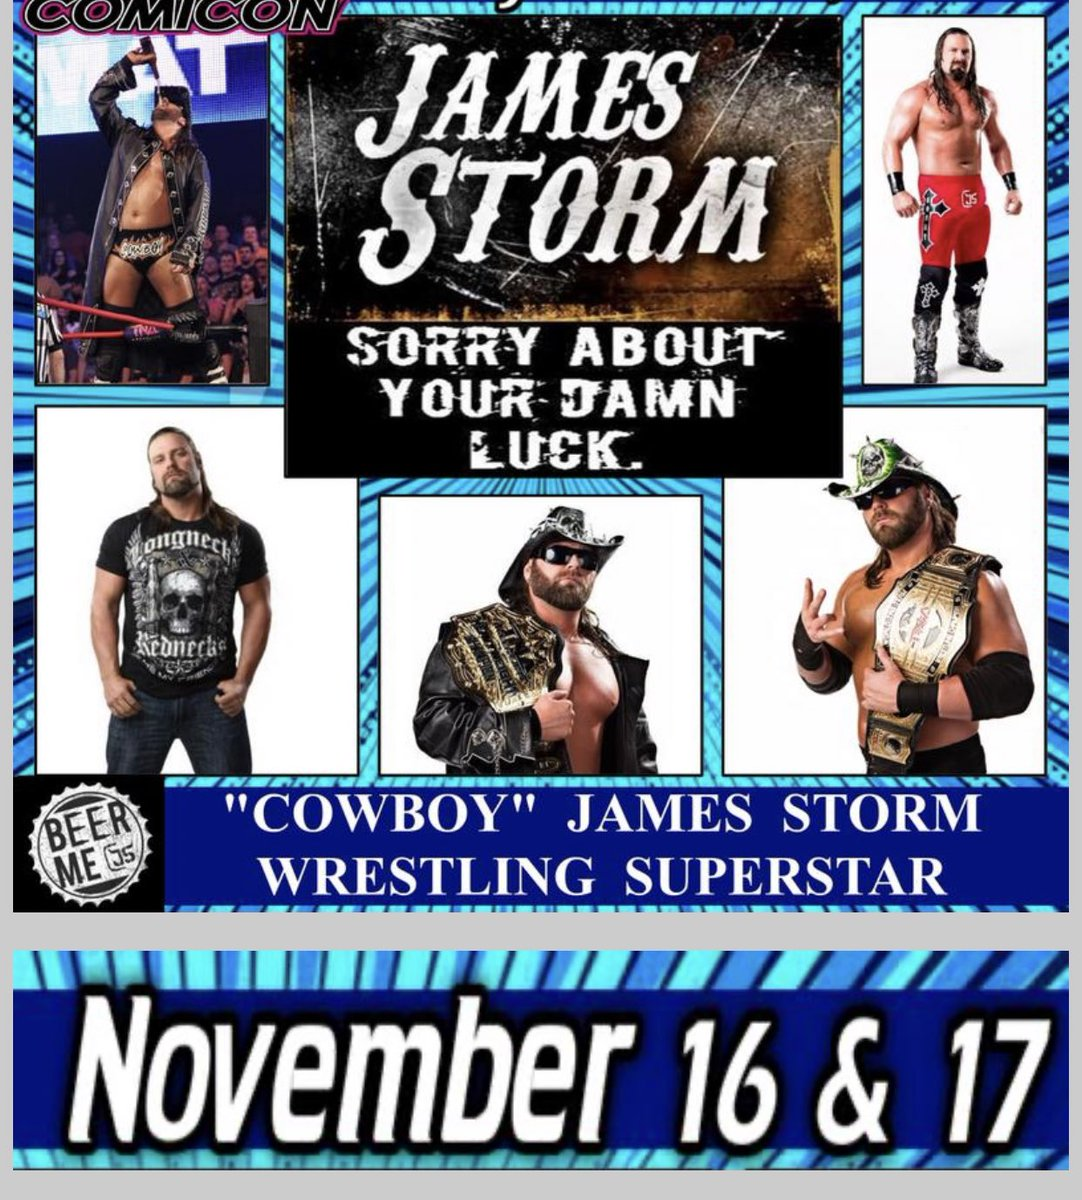 JamesStormBrand photo